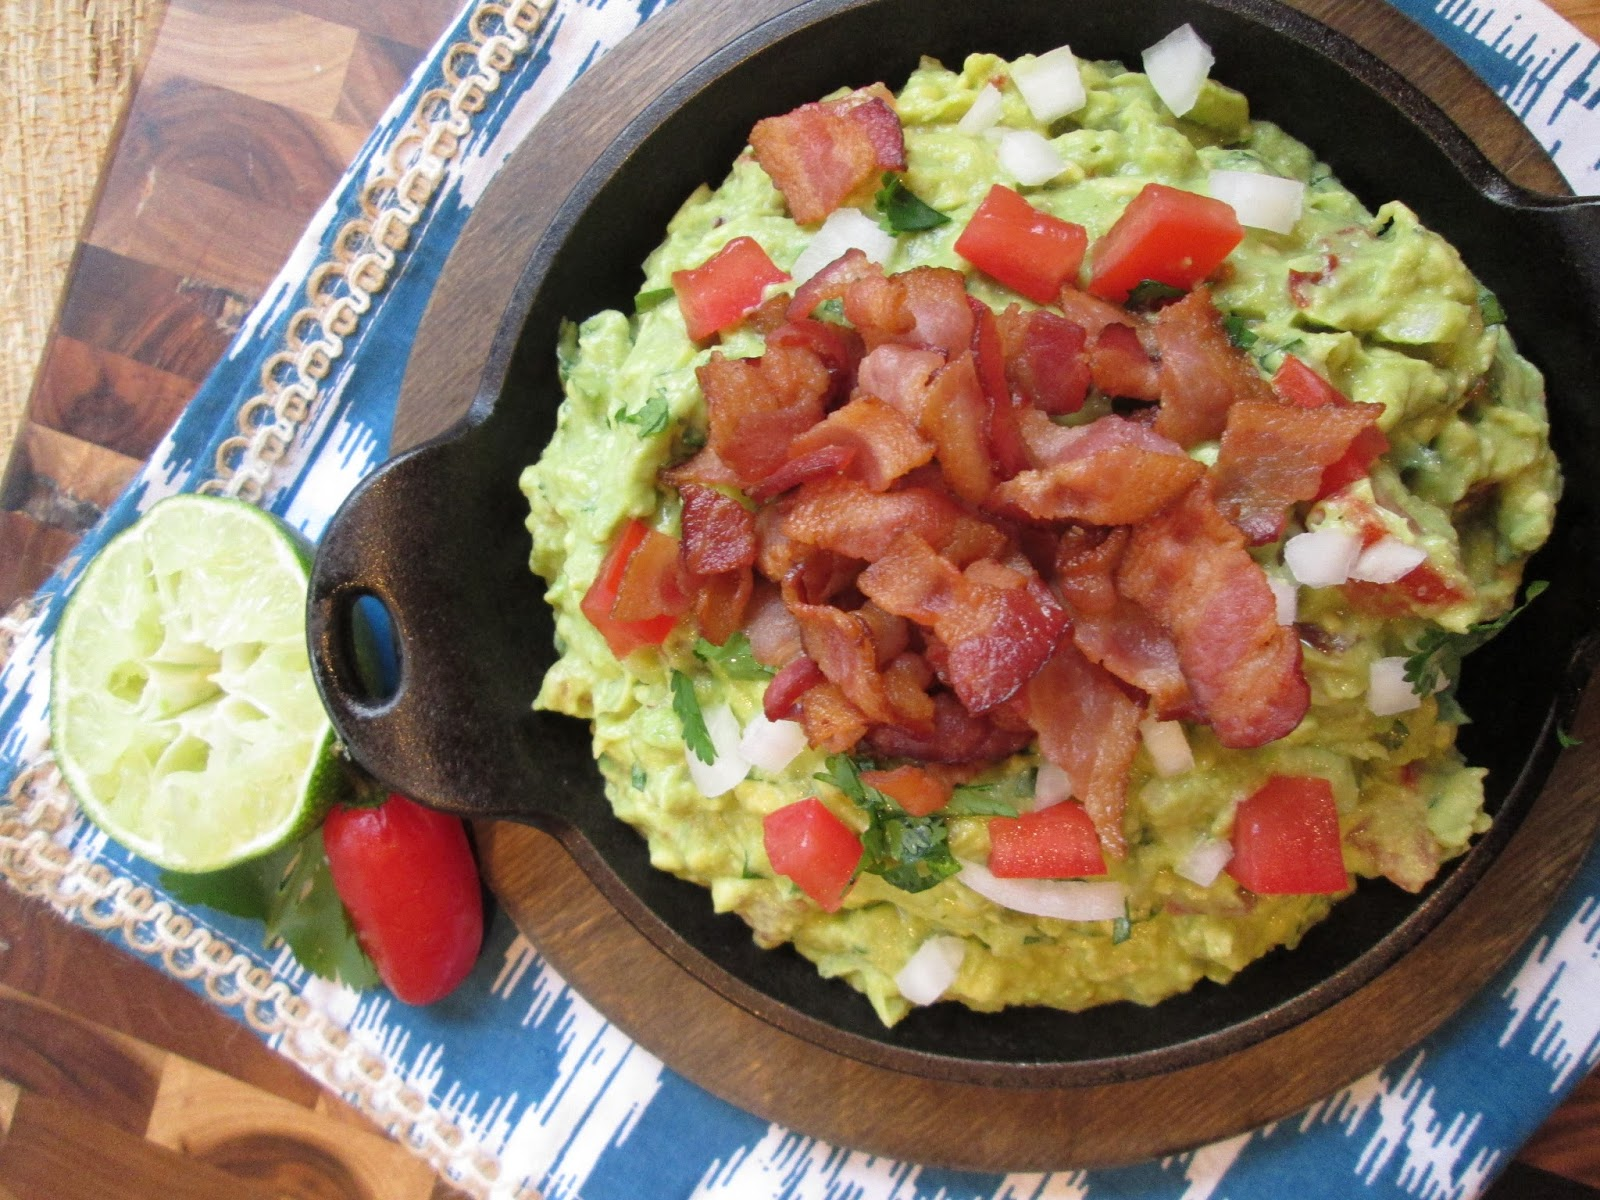 ... : Rick Bayless' Guacamole with Bacon and Tomato {A Party Favorite